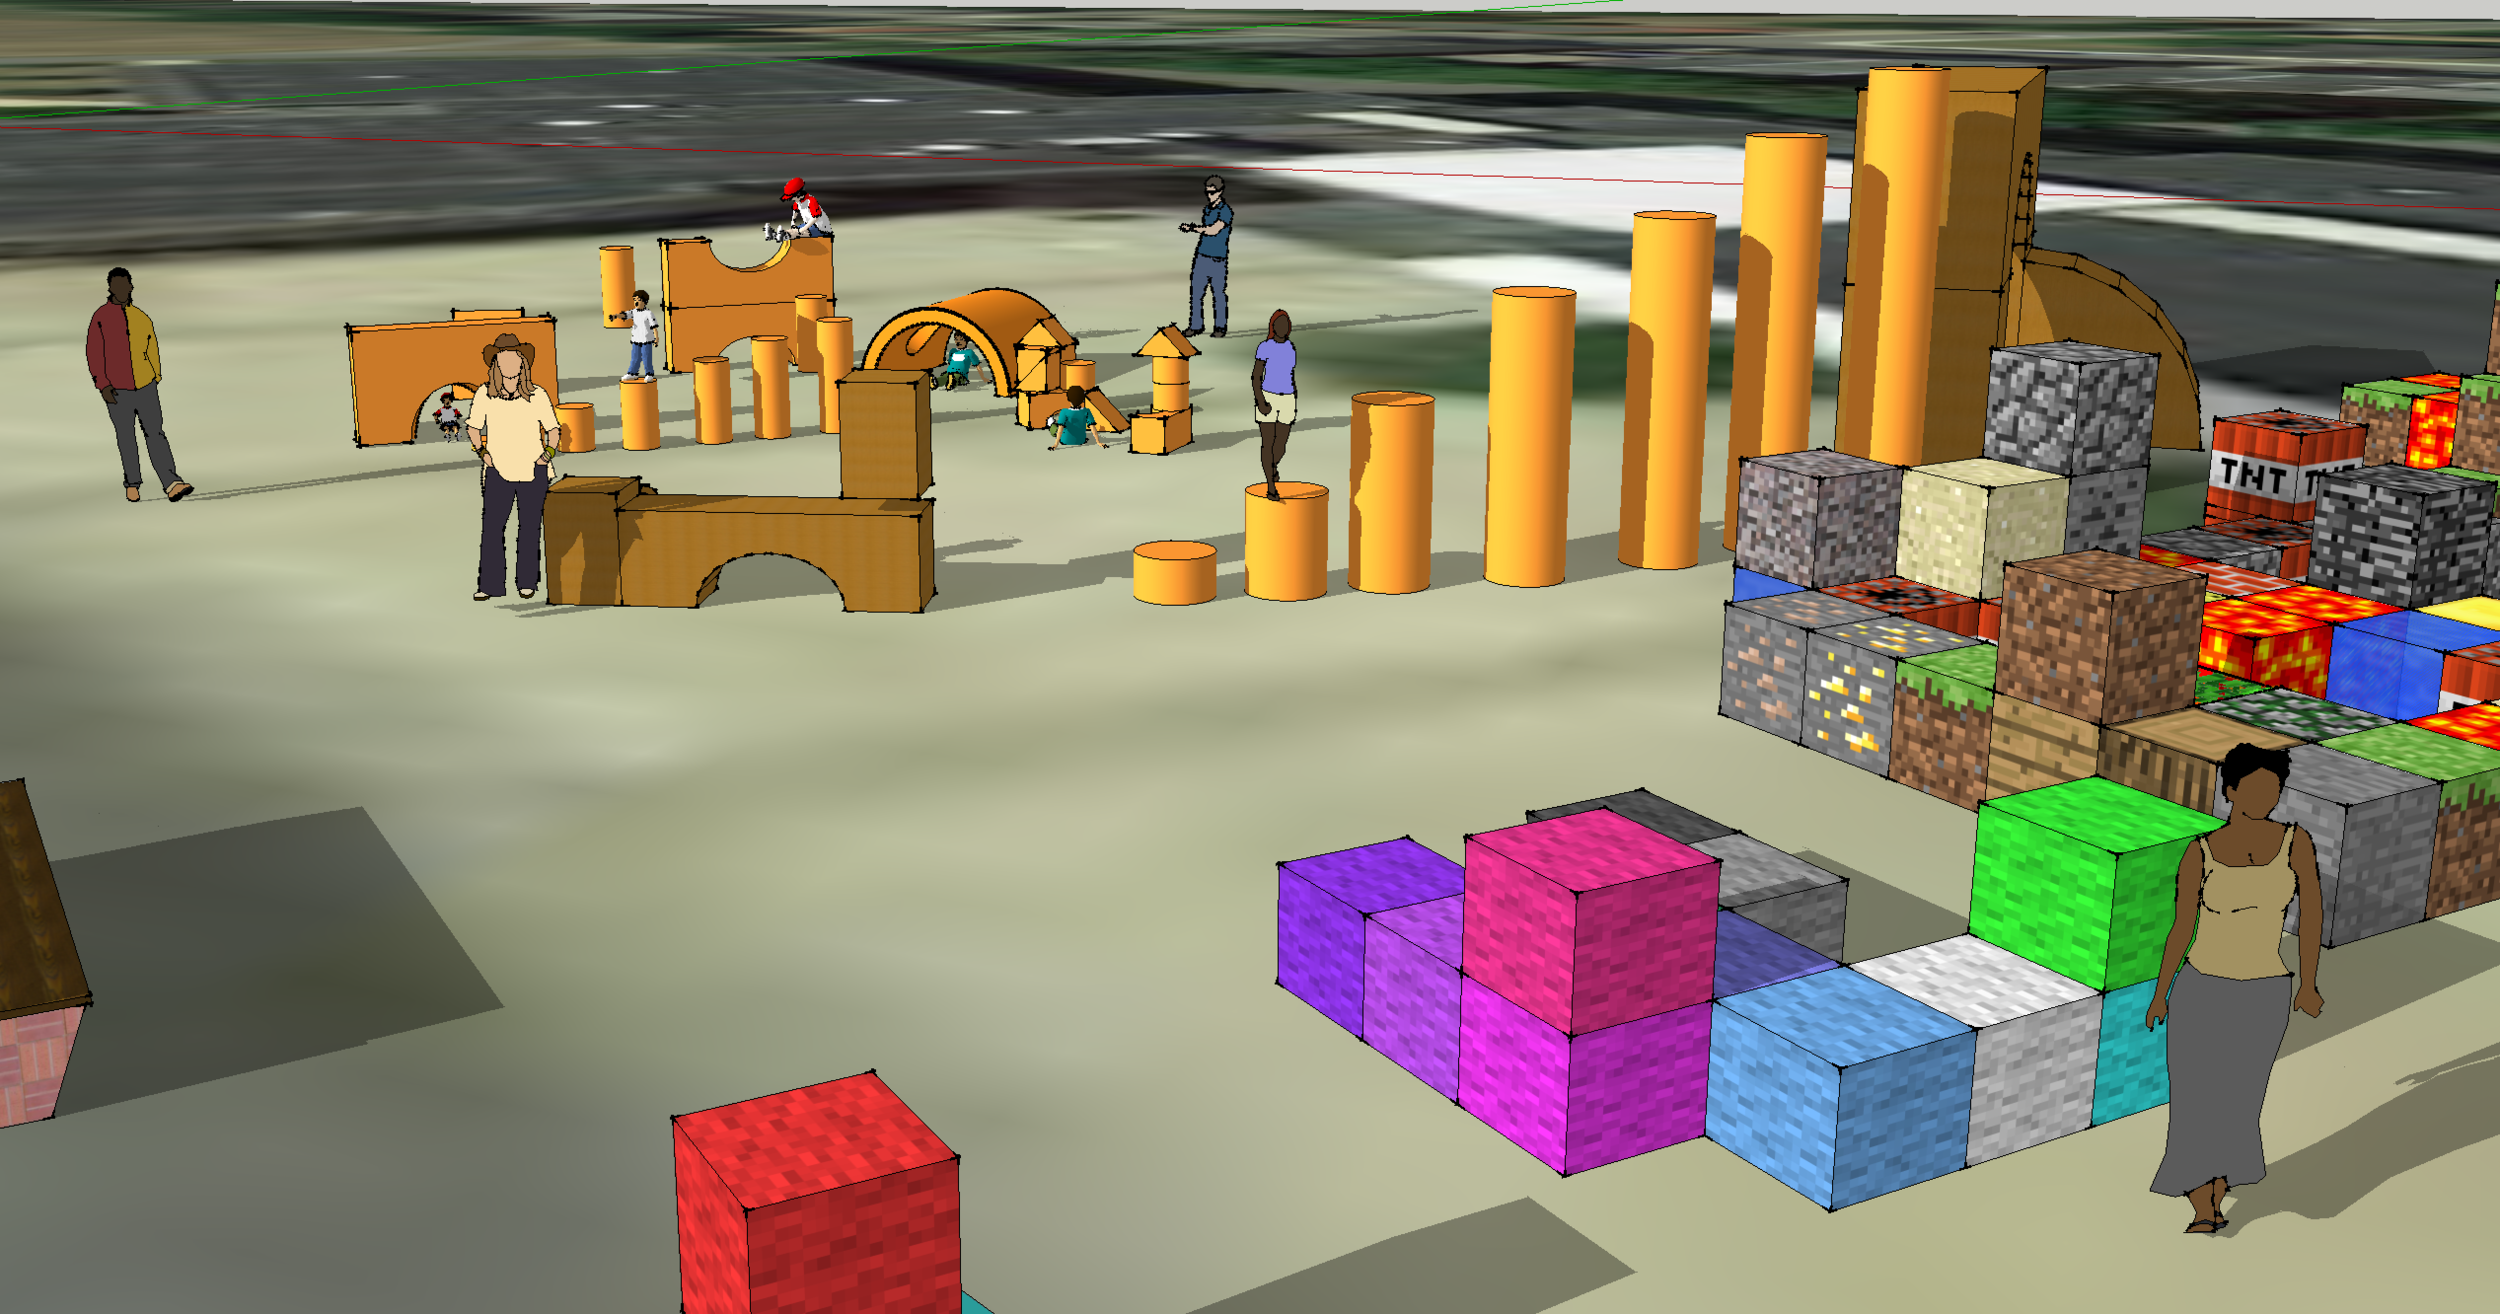 Minecraft-inspired blocks can be configured in multiple ways. Rendering by Alexandra Bowen